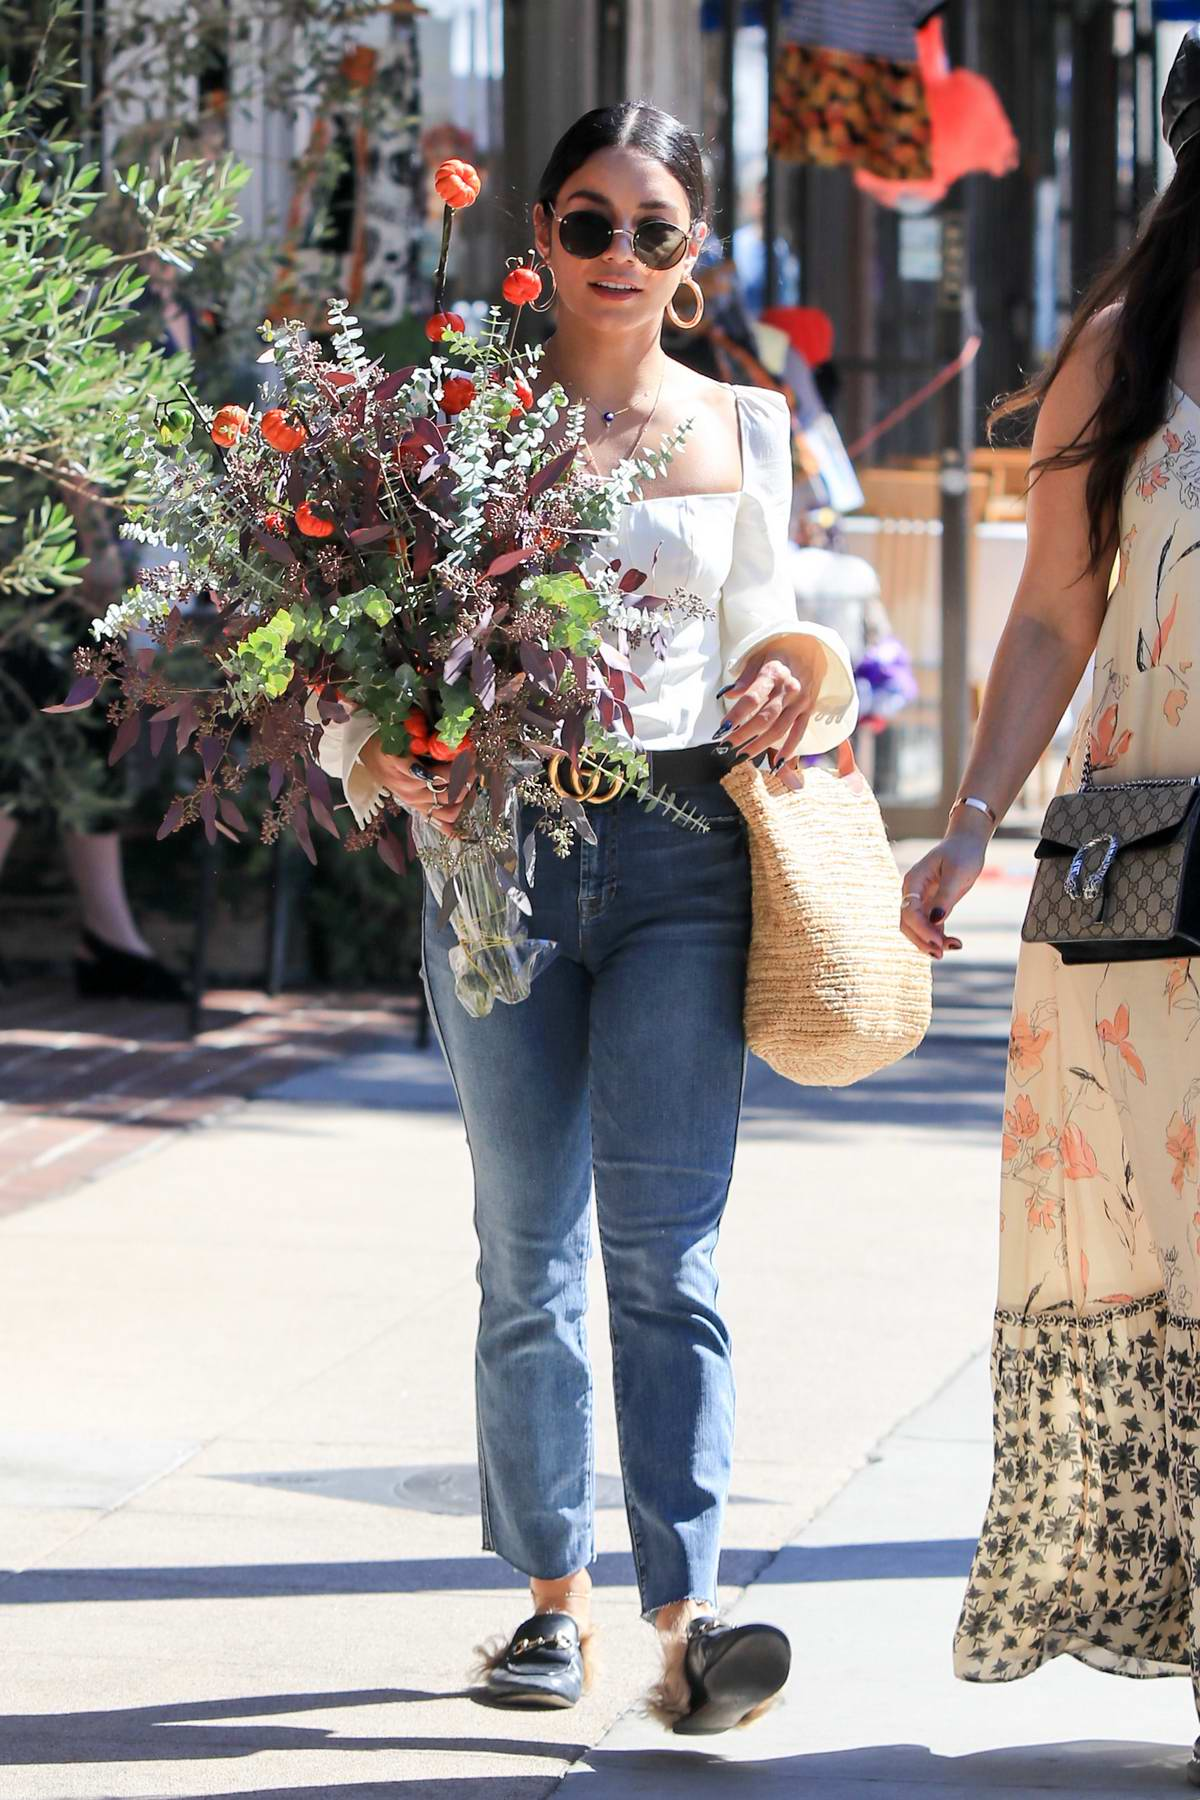 Vanessa Hudgens spends her morning out shopping at the farmers market in Los Angeles